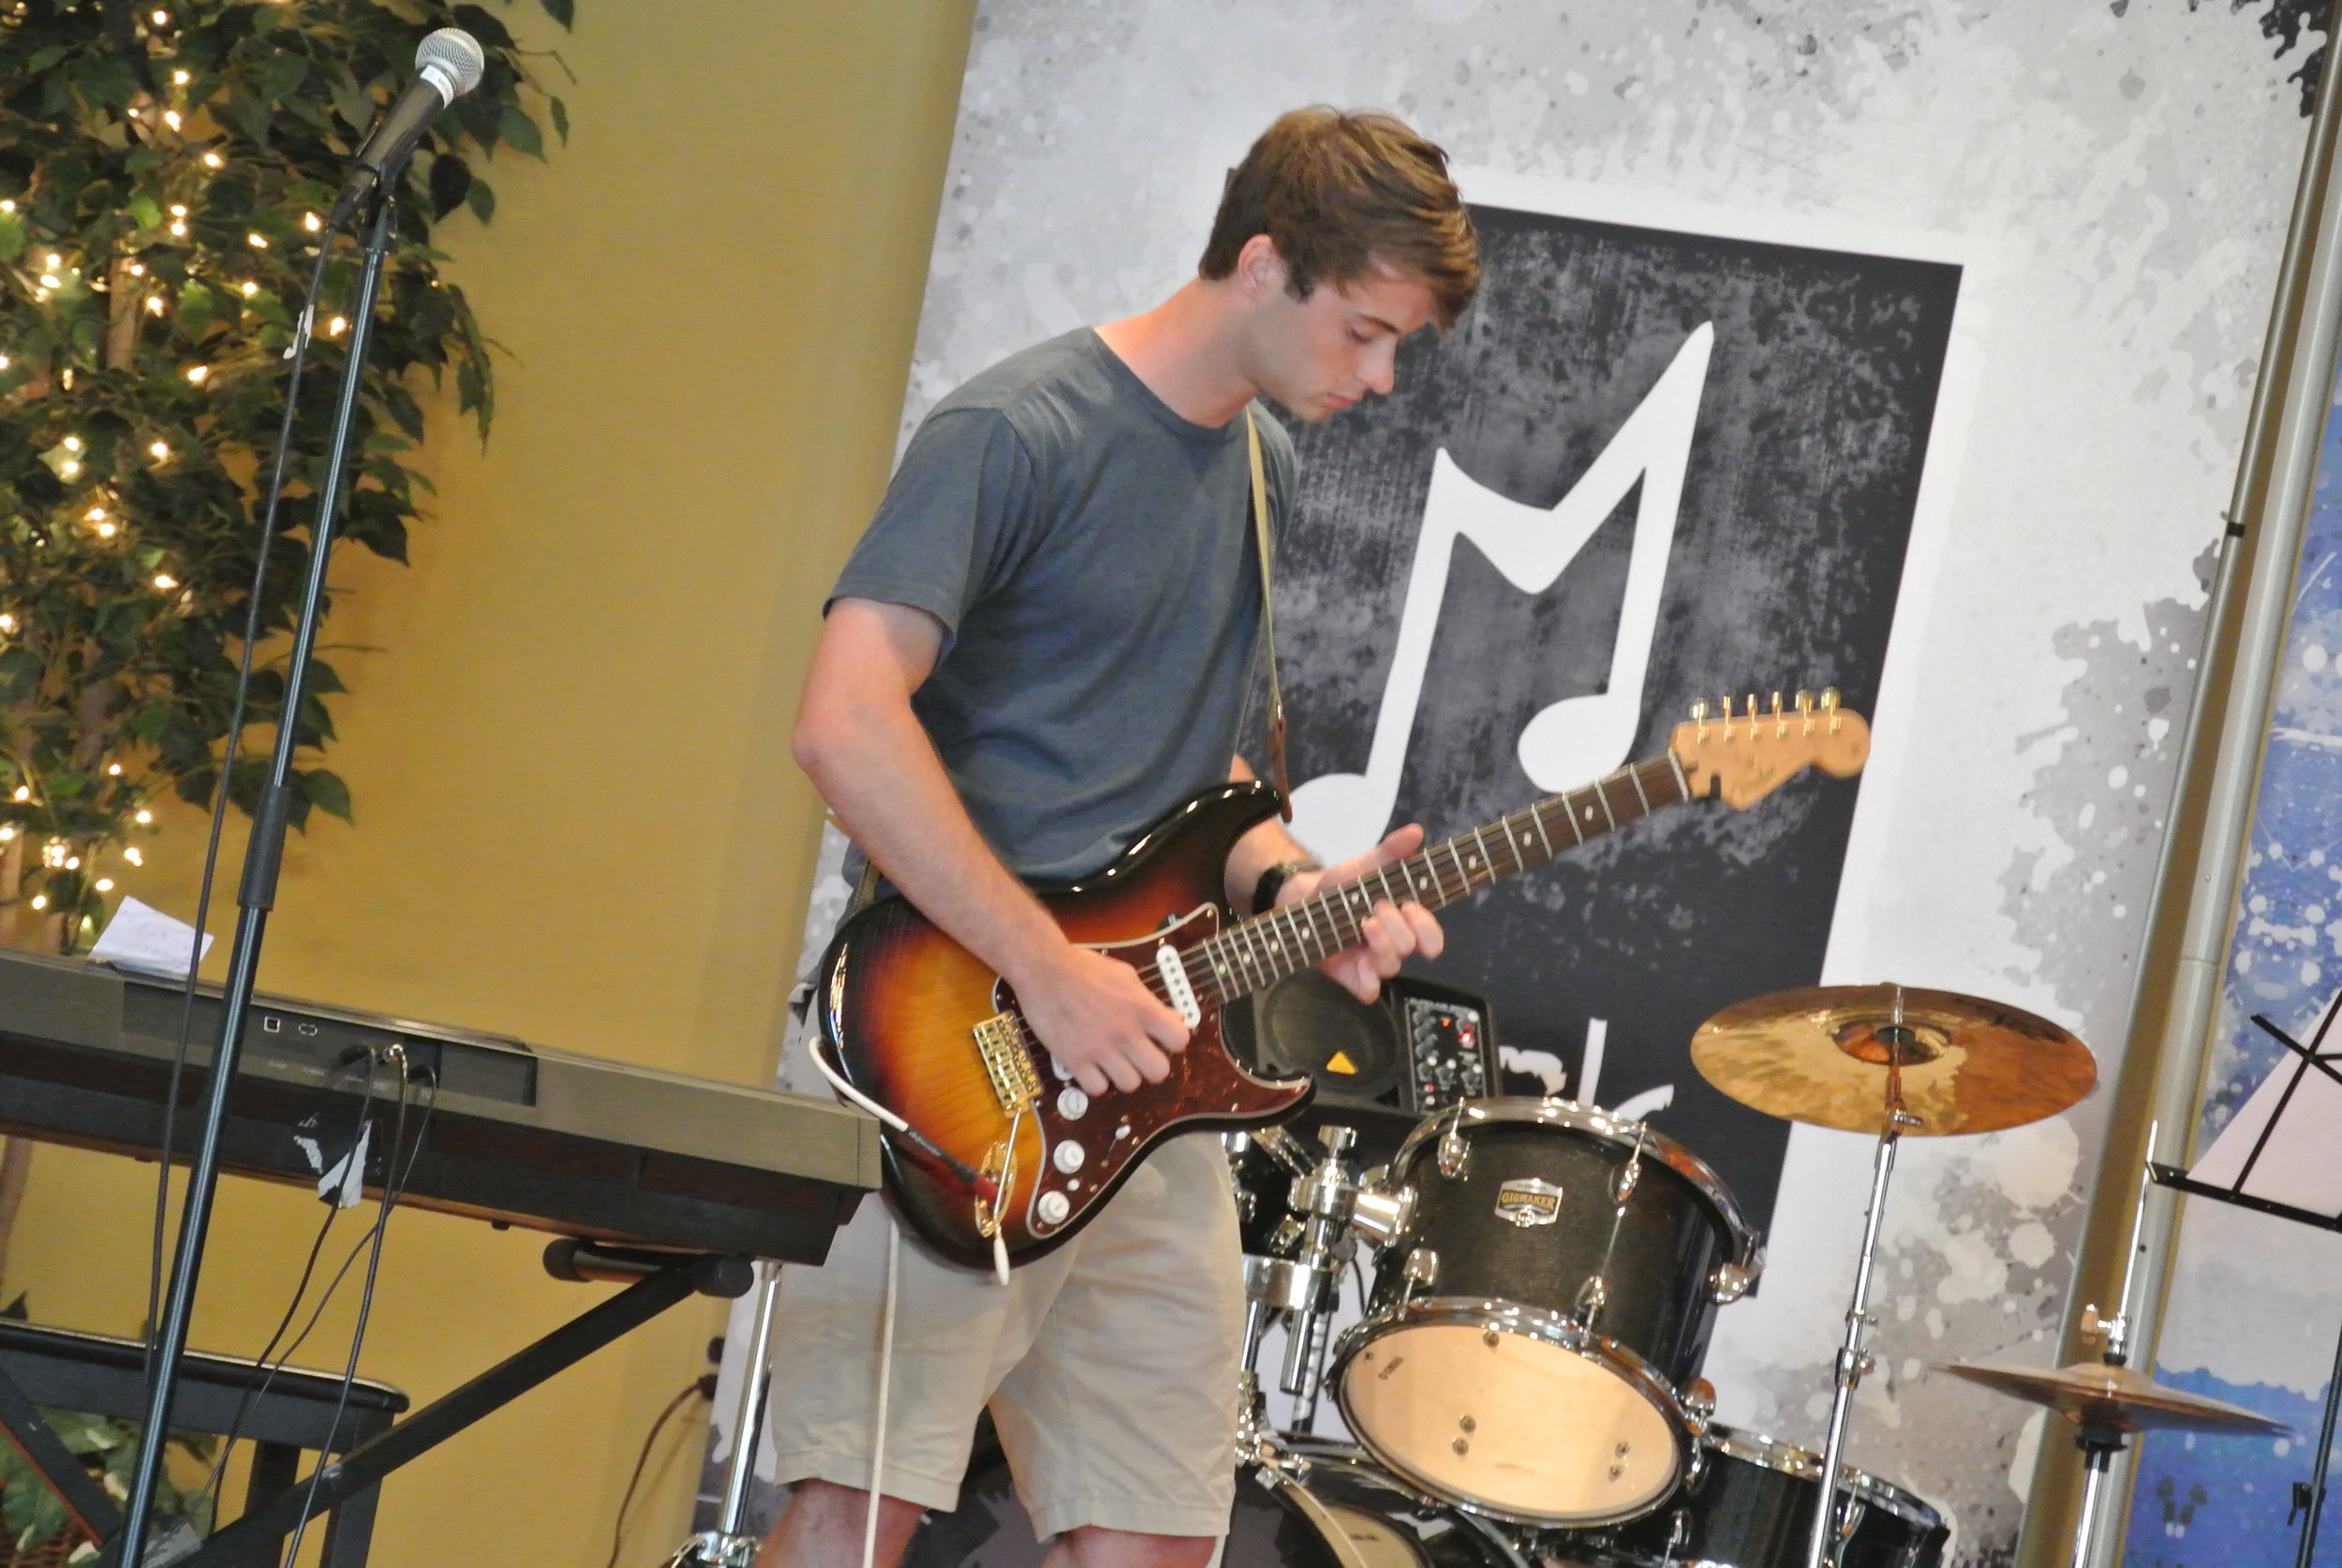 main line guitar bass drum rock band lessons in-home music lessons Meridee winters school of music